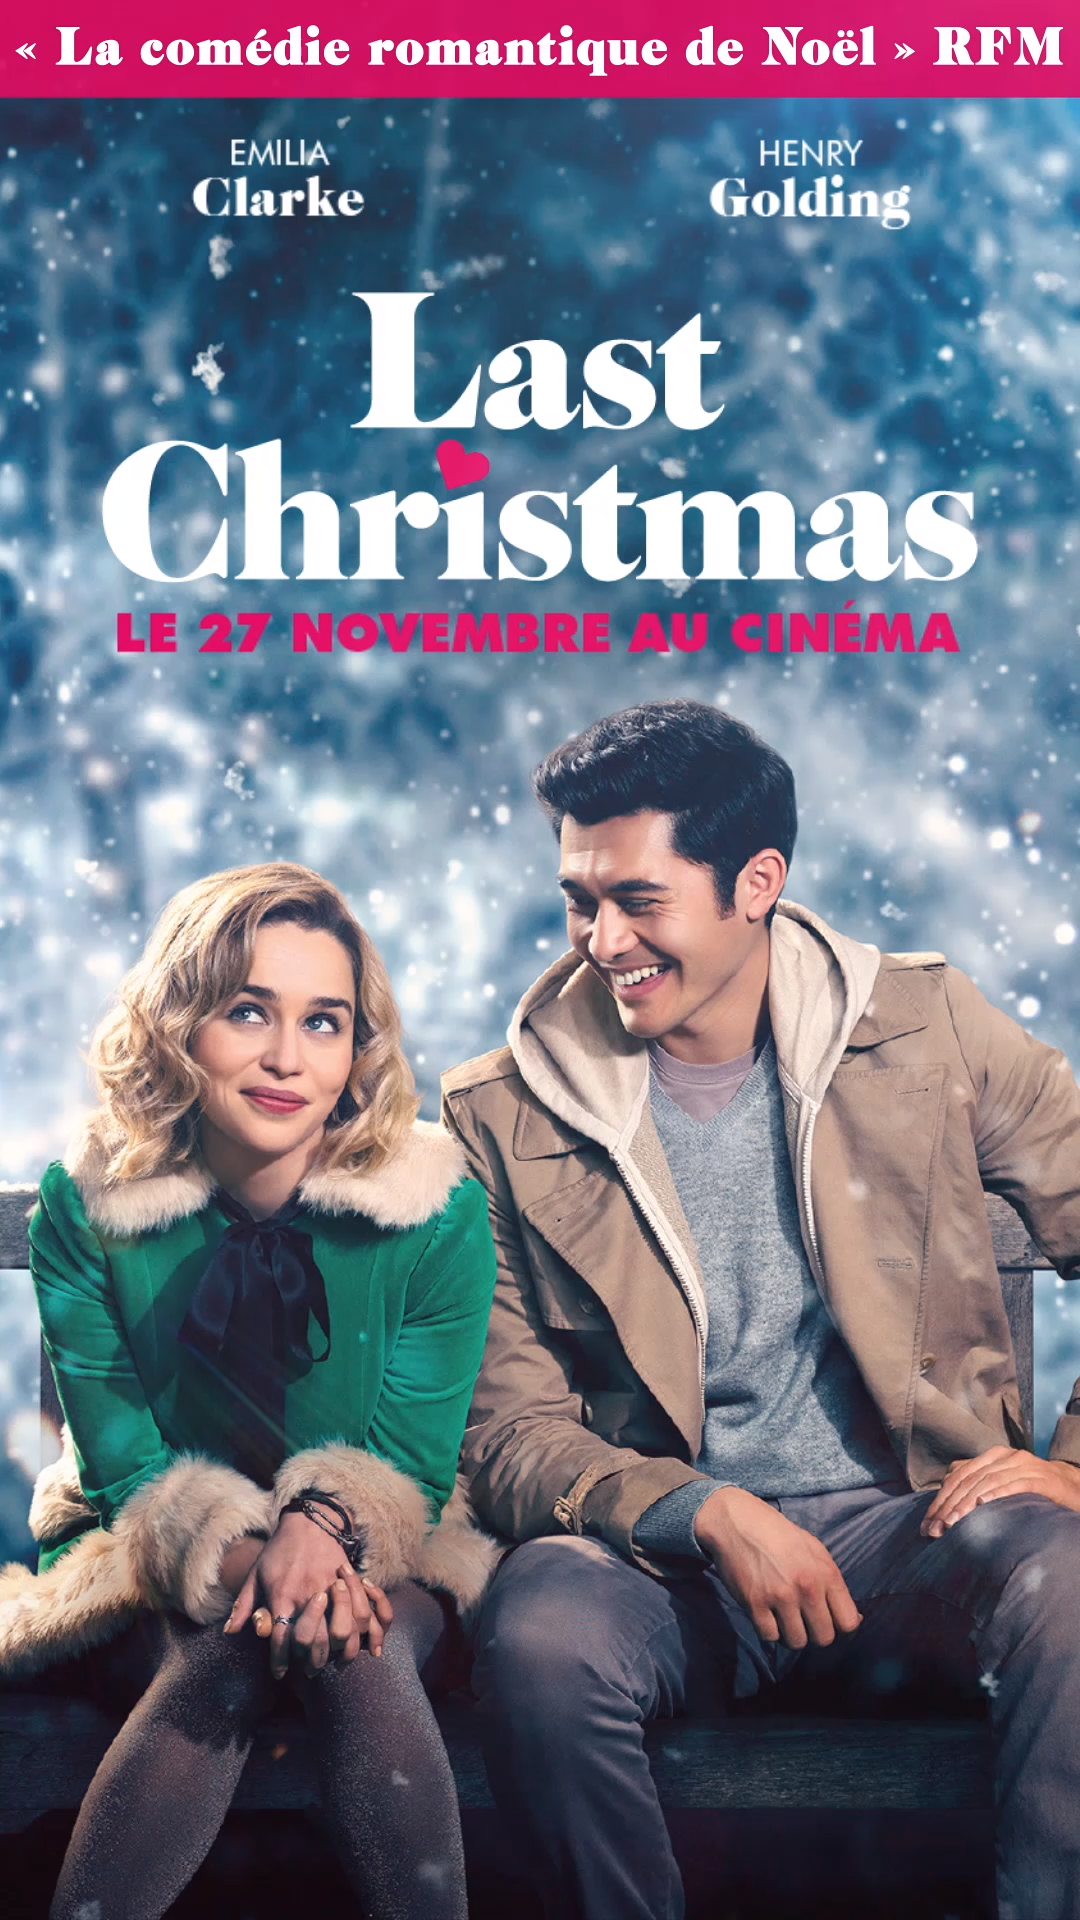 Last Christmas Le 27 Novembre Au Cinema In 2020 Last Christmas Funny Christmas Movies Christmas Movie Quotes